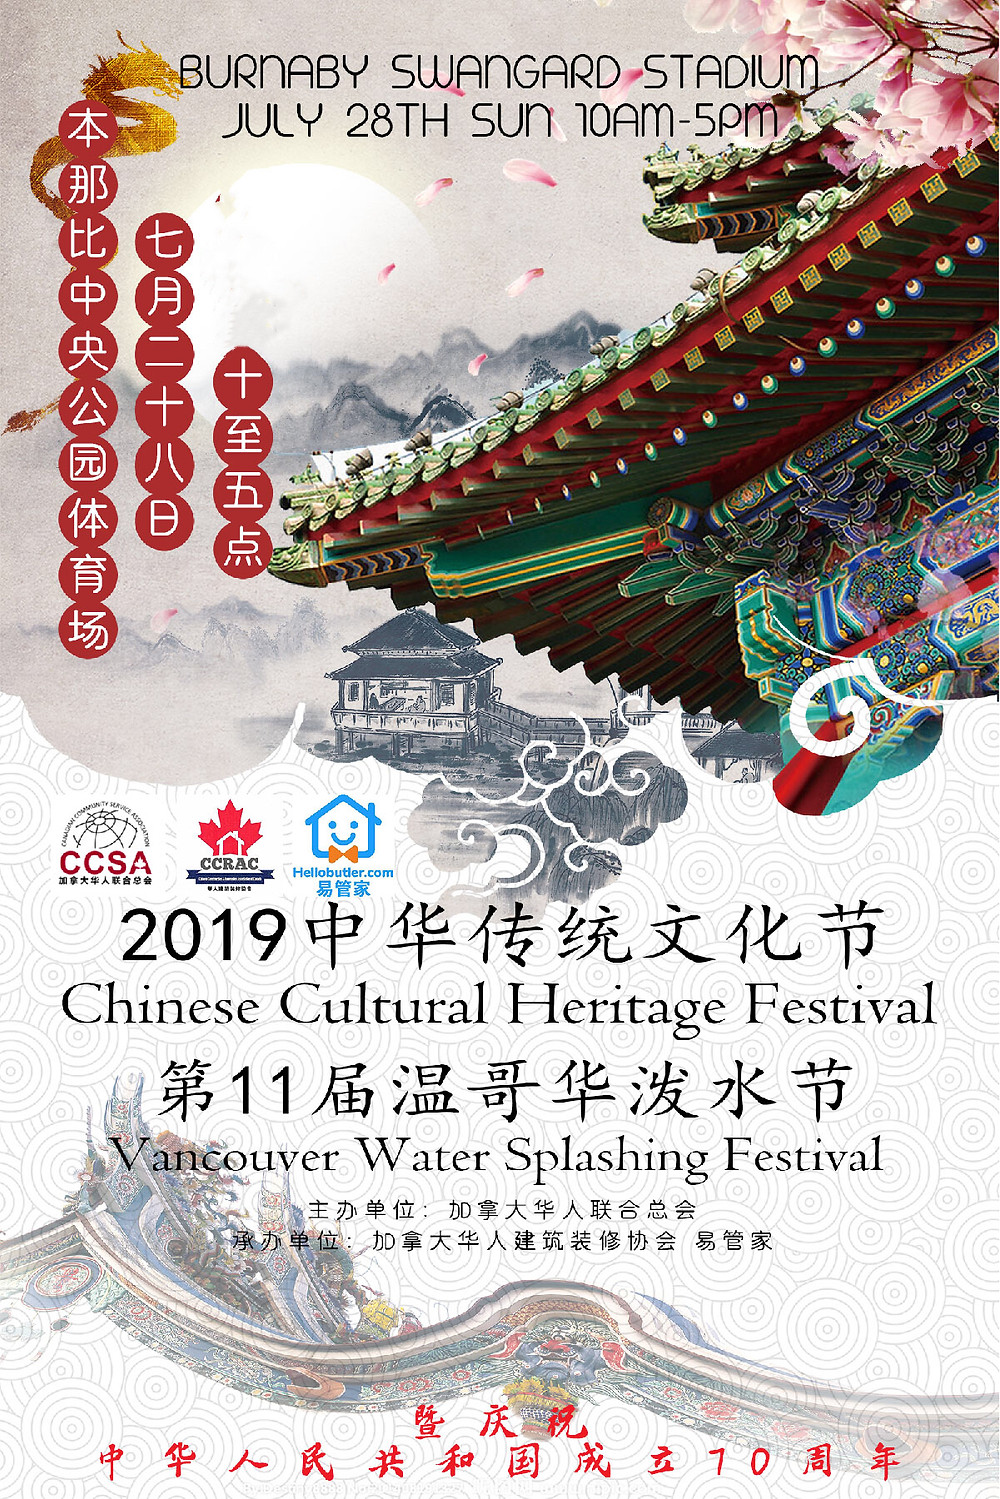 Poster for Chinese Cultural Heritage Festival 2019